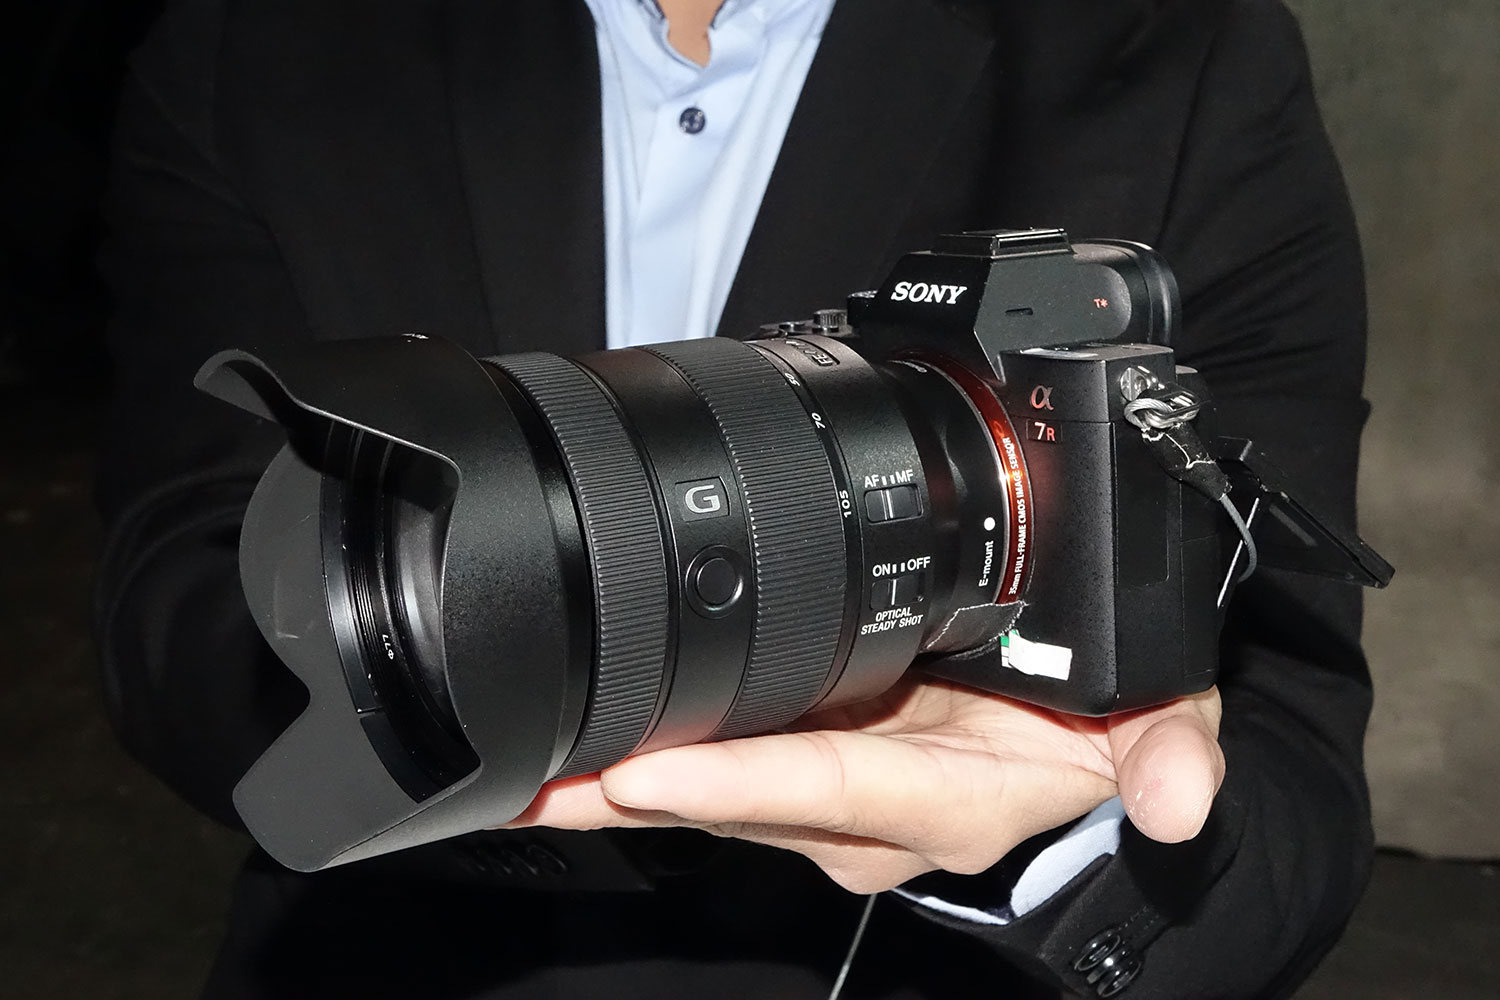 Dxomark Crowns A New Mirrorless Champion — The Sony A7r Iii. Student Loan Forgiveness For Military. Fair Debt Collection Practices Act Summary. Free Advertising Online For My Website. Design Mobile Application In Memory Database. Security System Installation. Windows Server 2008 Versions. Plasma Cutting Aluminum Enfield Family Dental. Emergency Medical Staff Laser 3 In 1 Printers